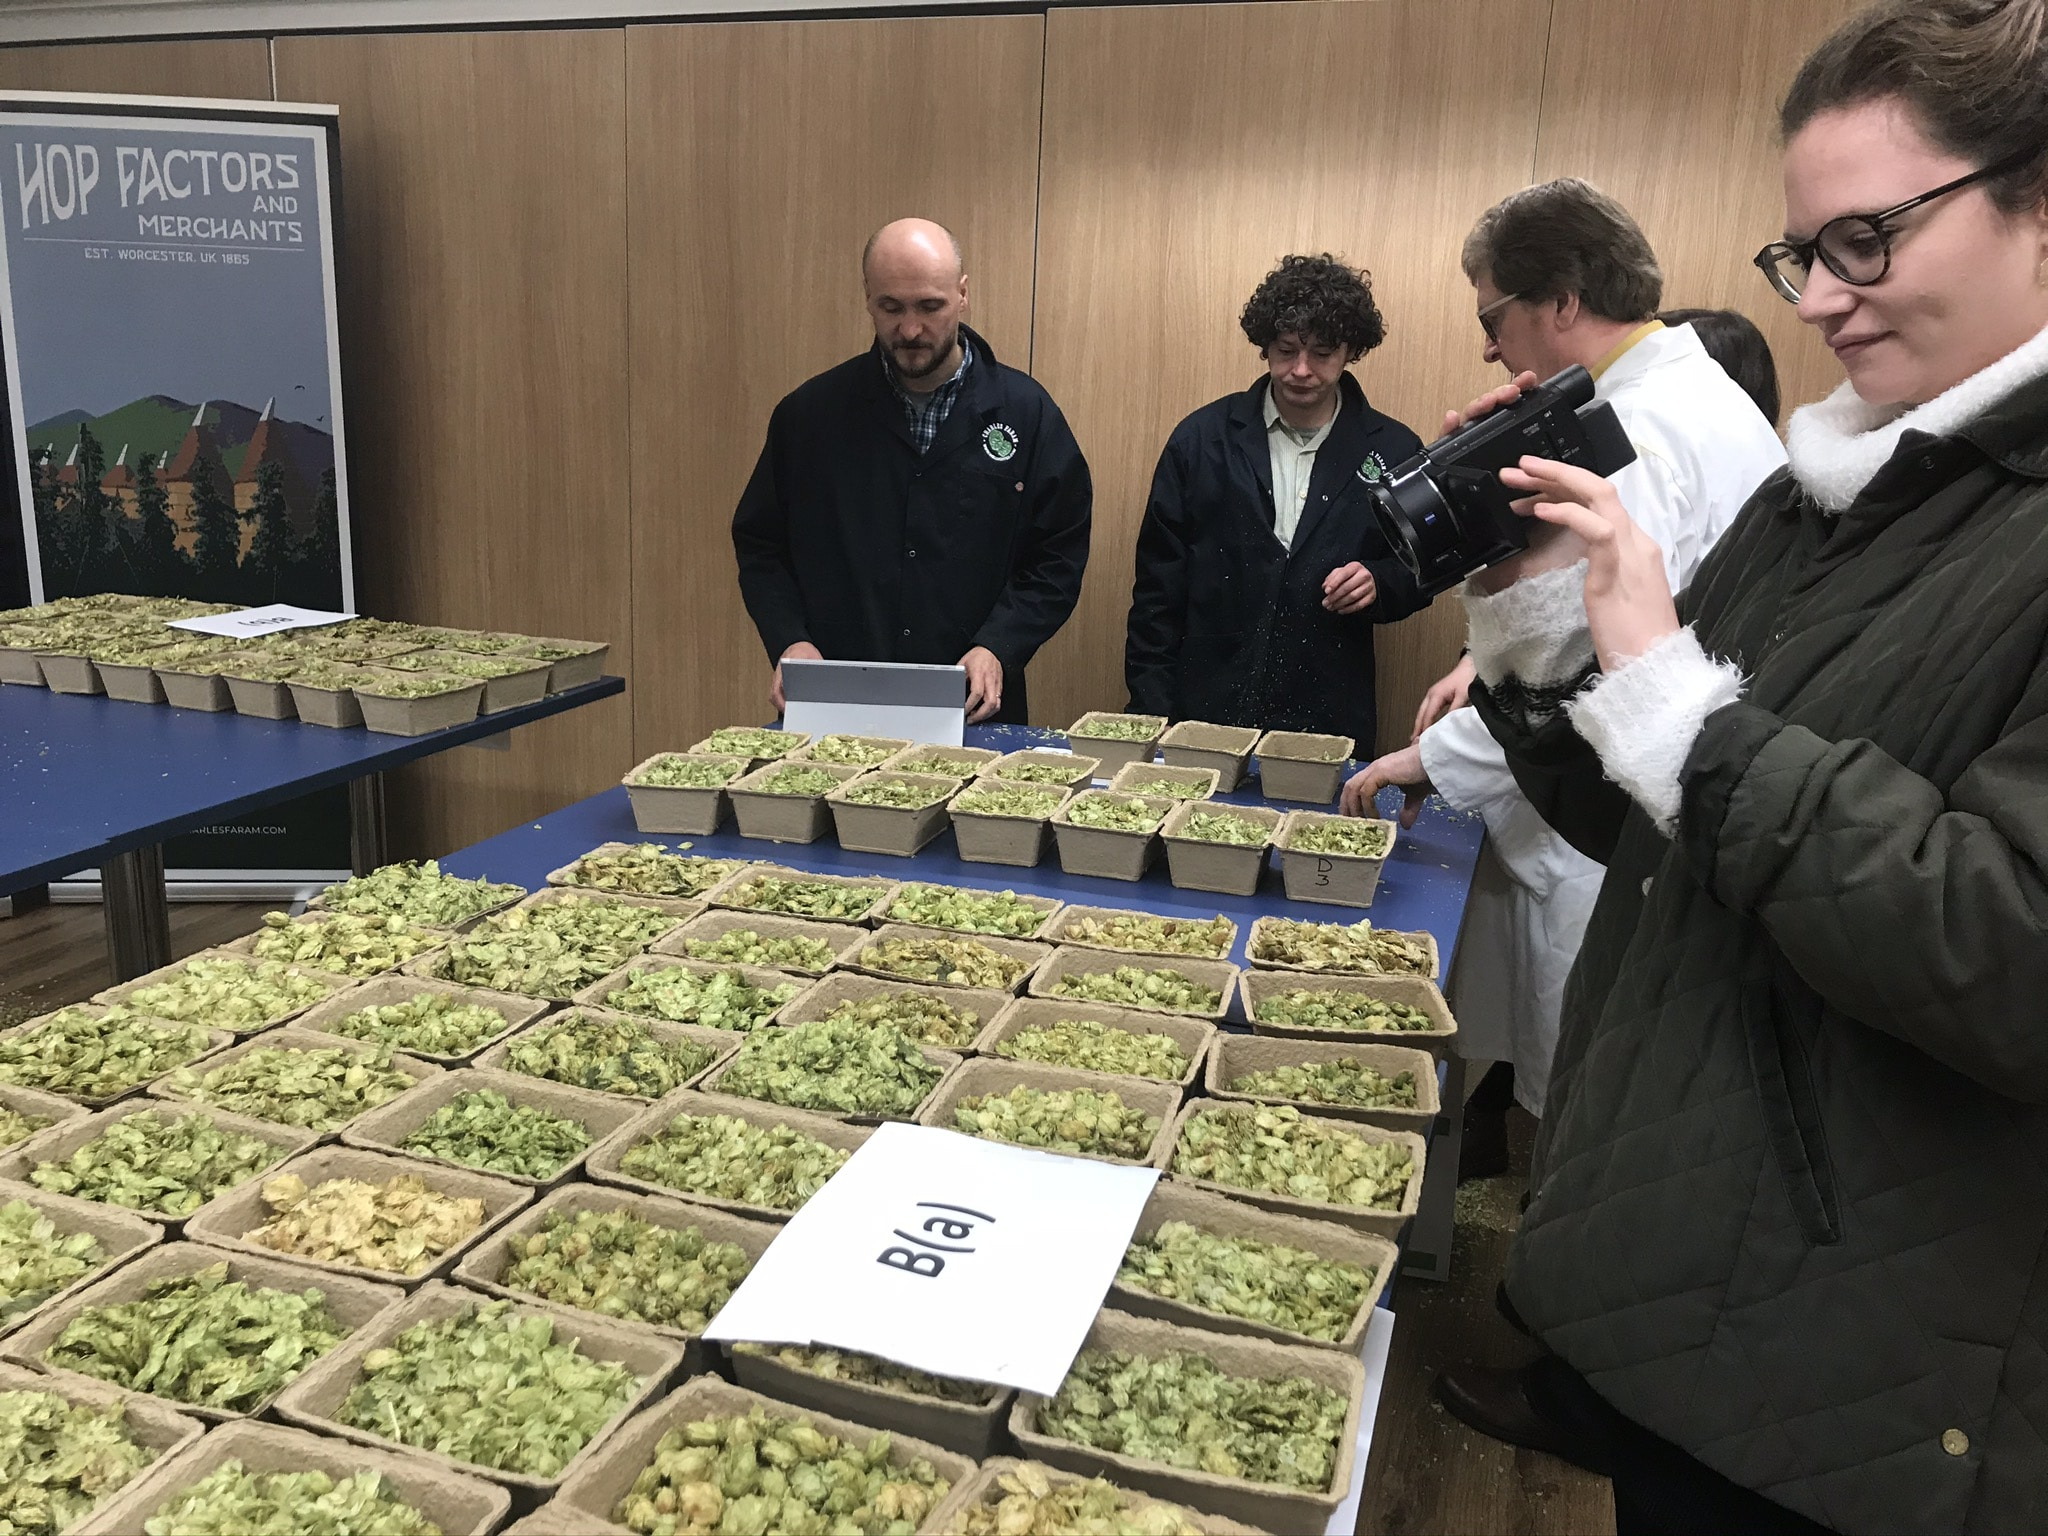 Photo of judges sampling the hops samples from small punnets for the British Hop Awards